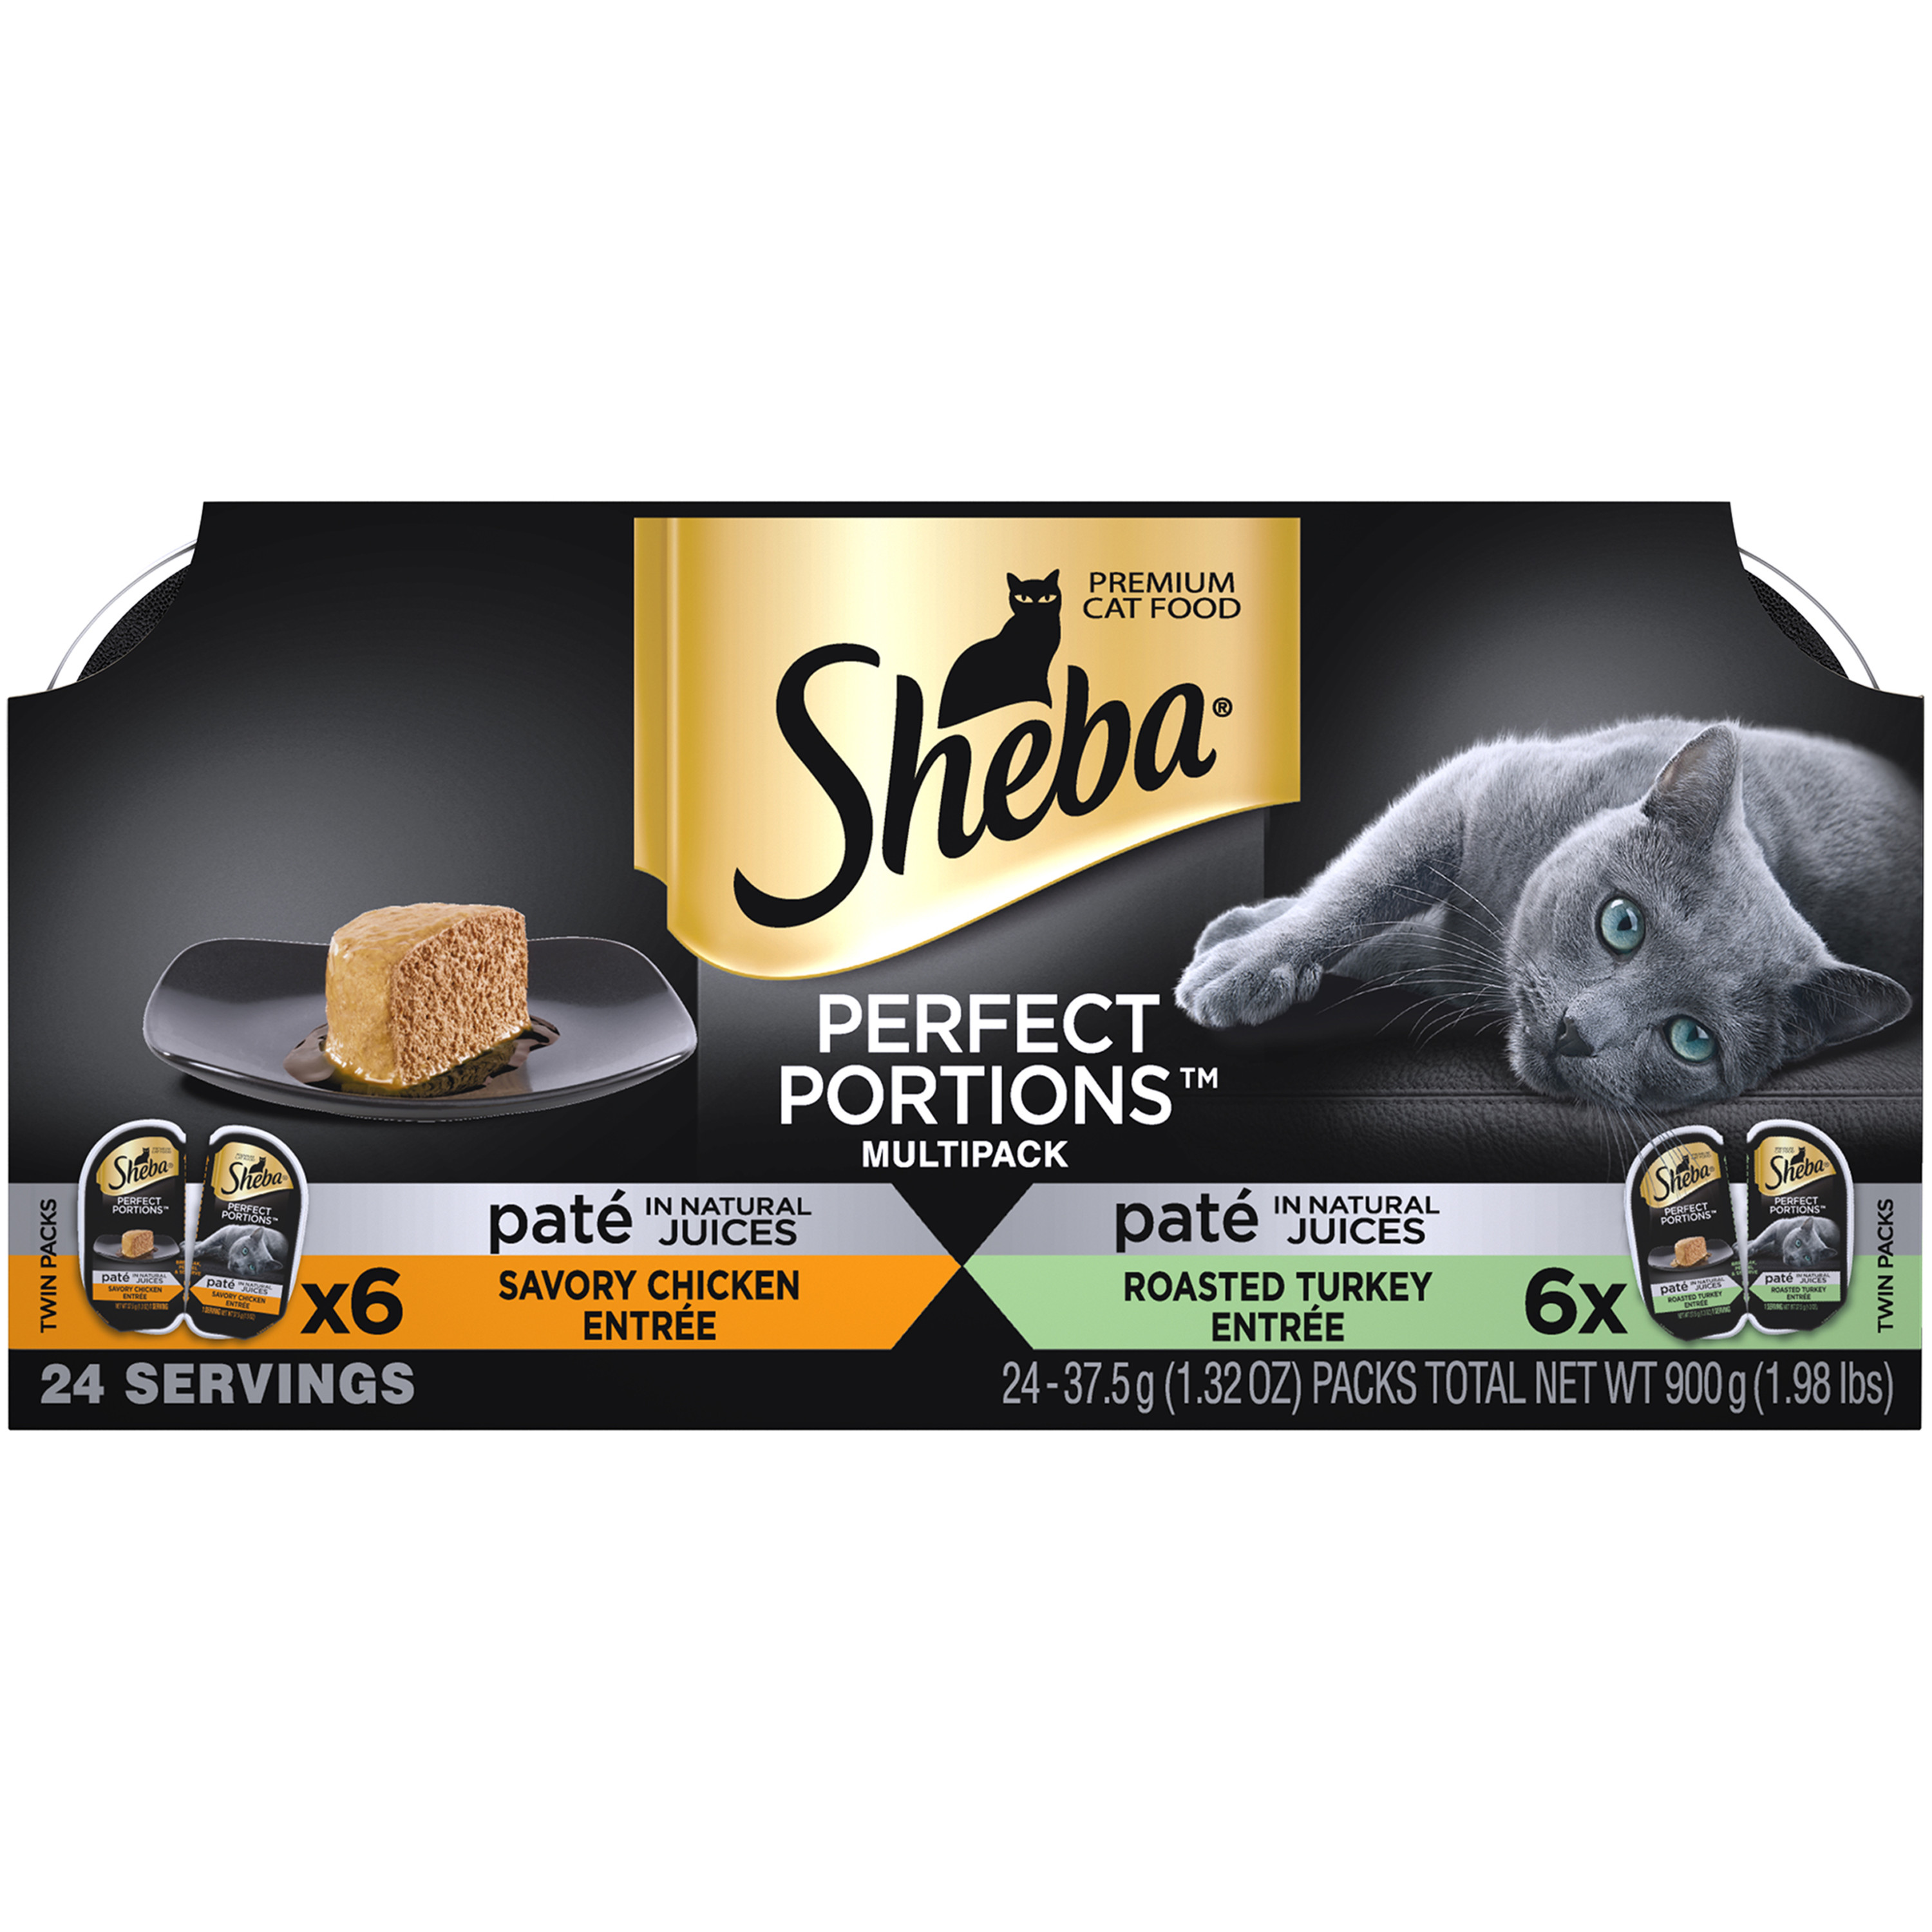 Sheba Perfect Portions Pate Multipack Savory Chicken Entree & Roasted Turkey Entree Grain Free Wet Cat Food 2.6 Ounces (12 Twin Packs)